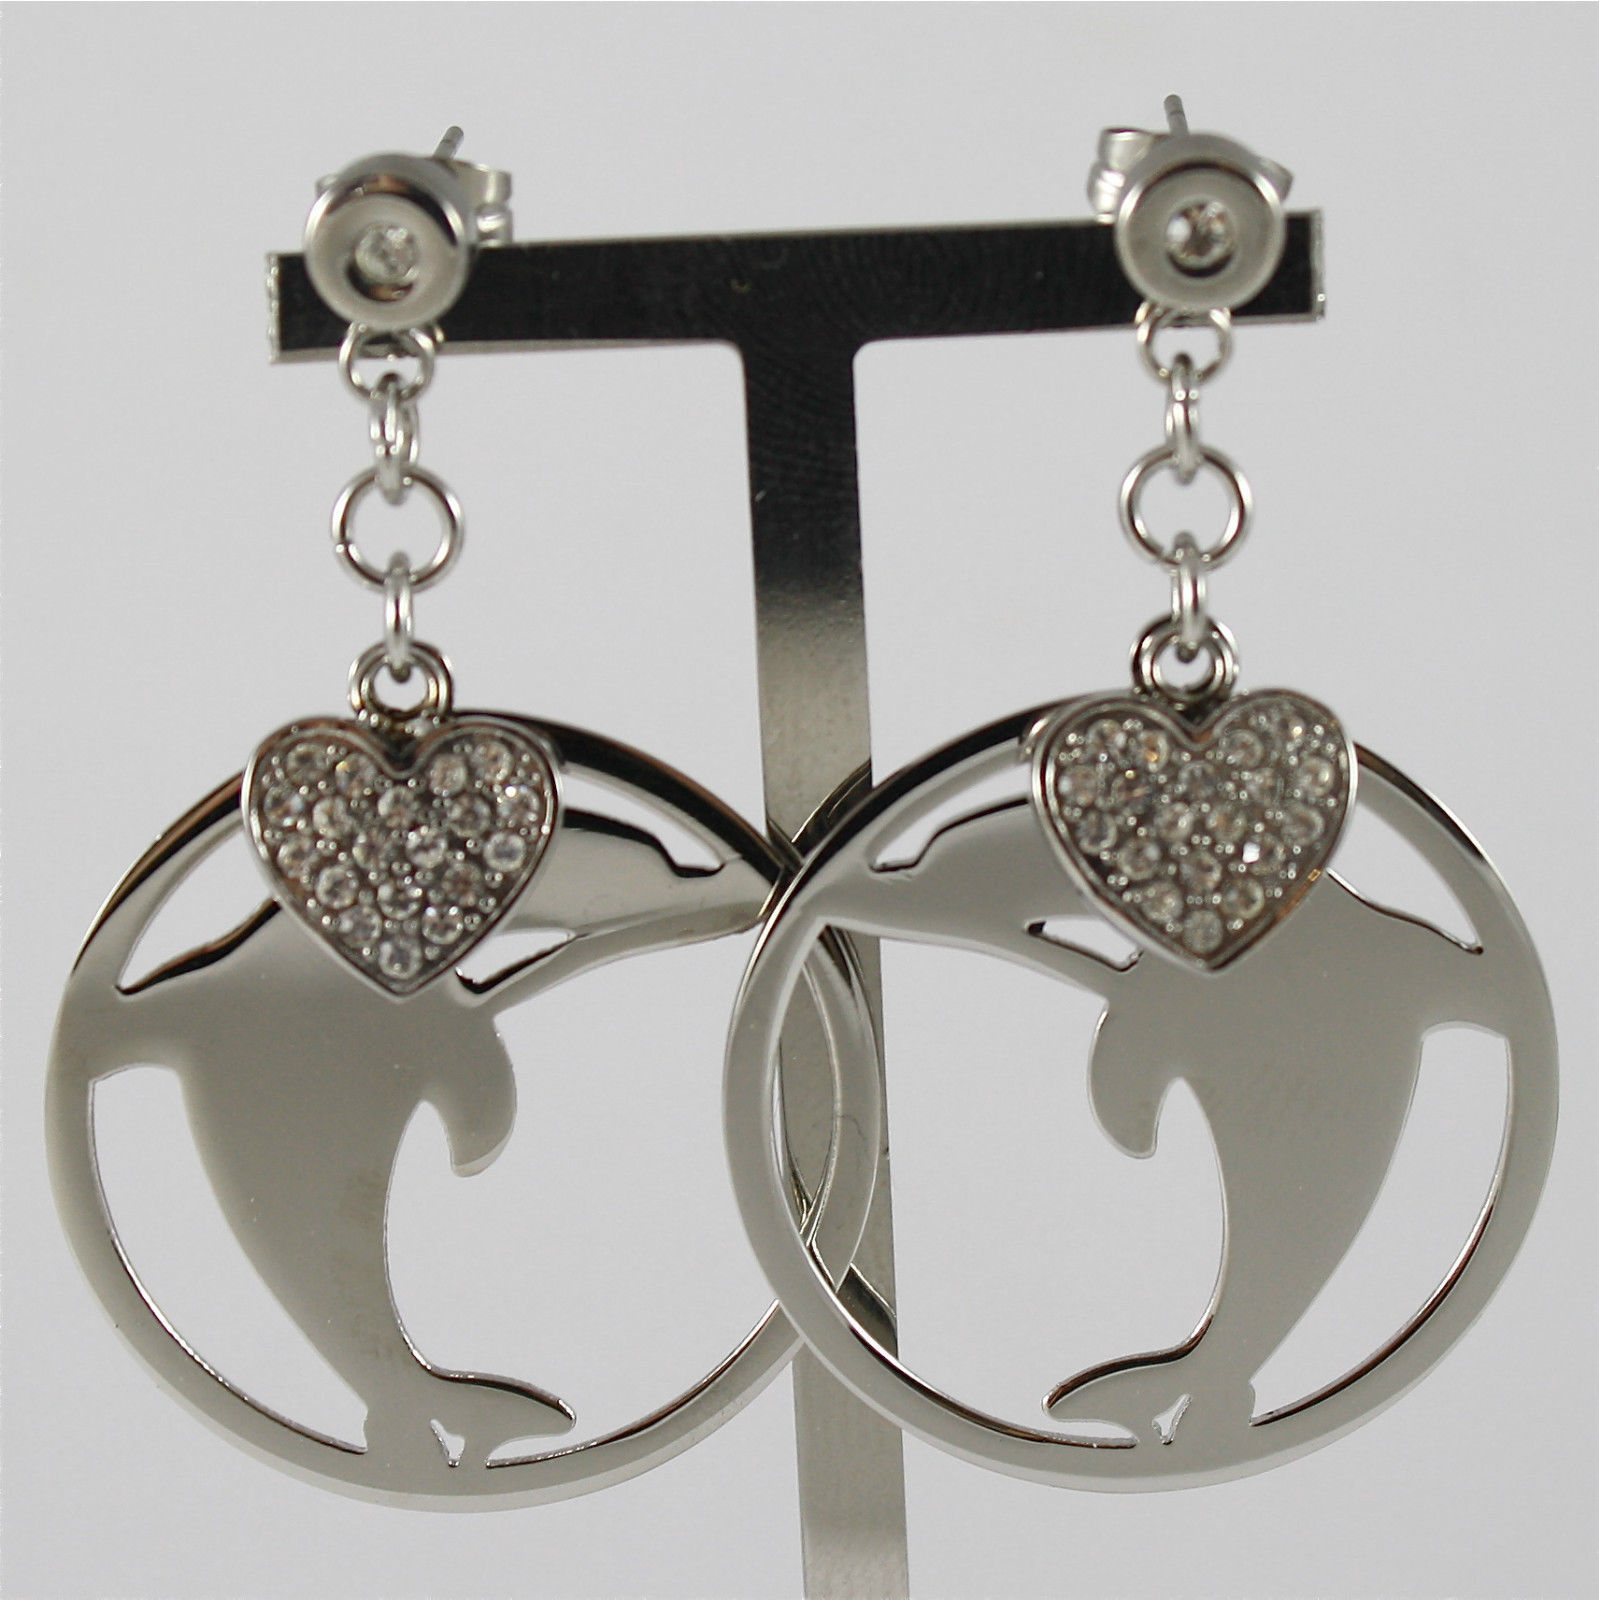 S'AGAPO' EARRINGS, 316L STEEL, DOLPHIN AND HEART, FACETED CRYSTALS.